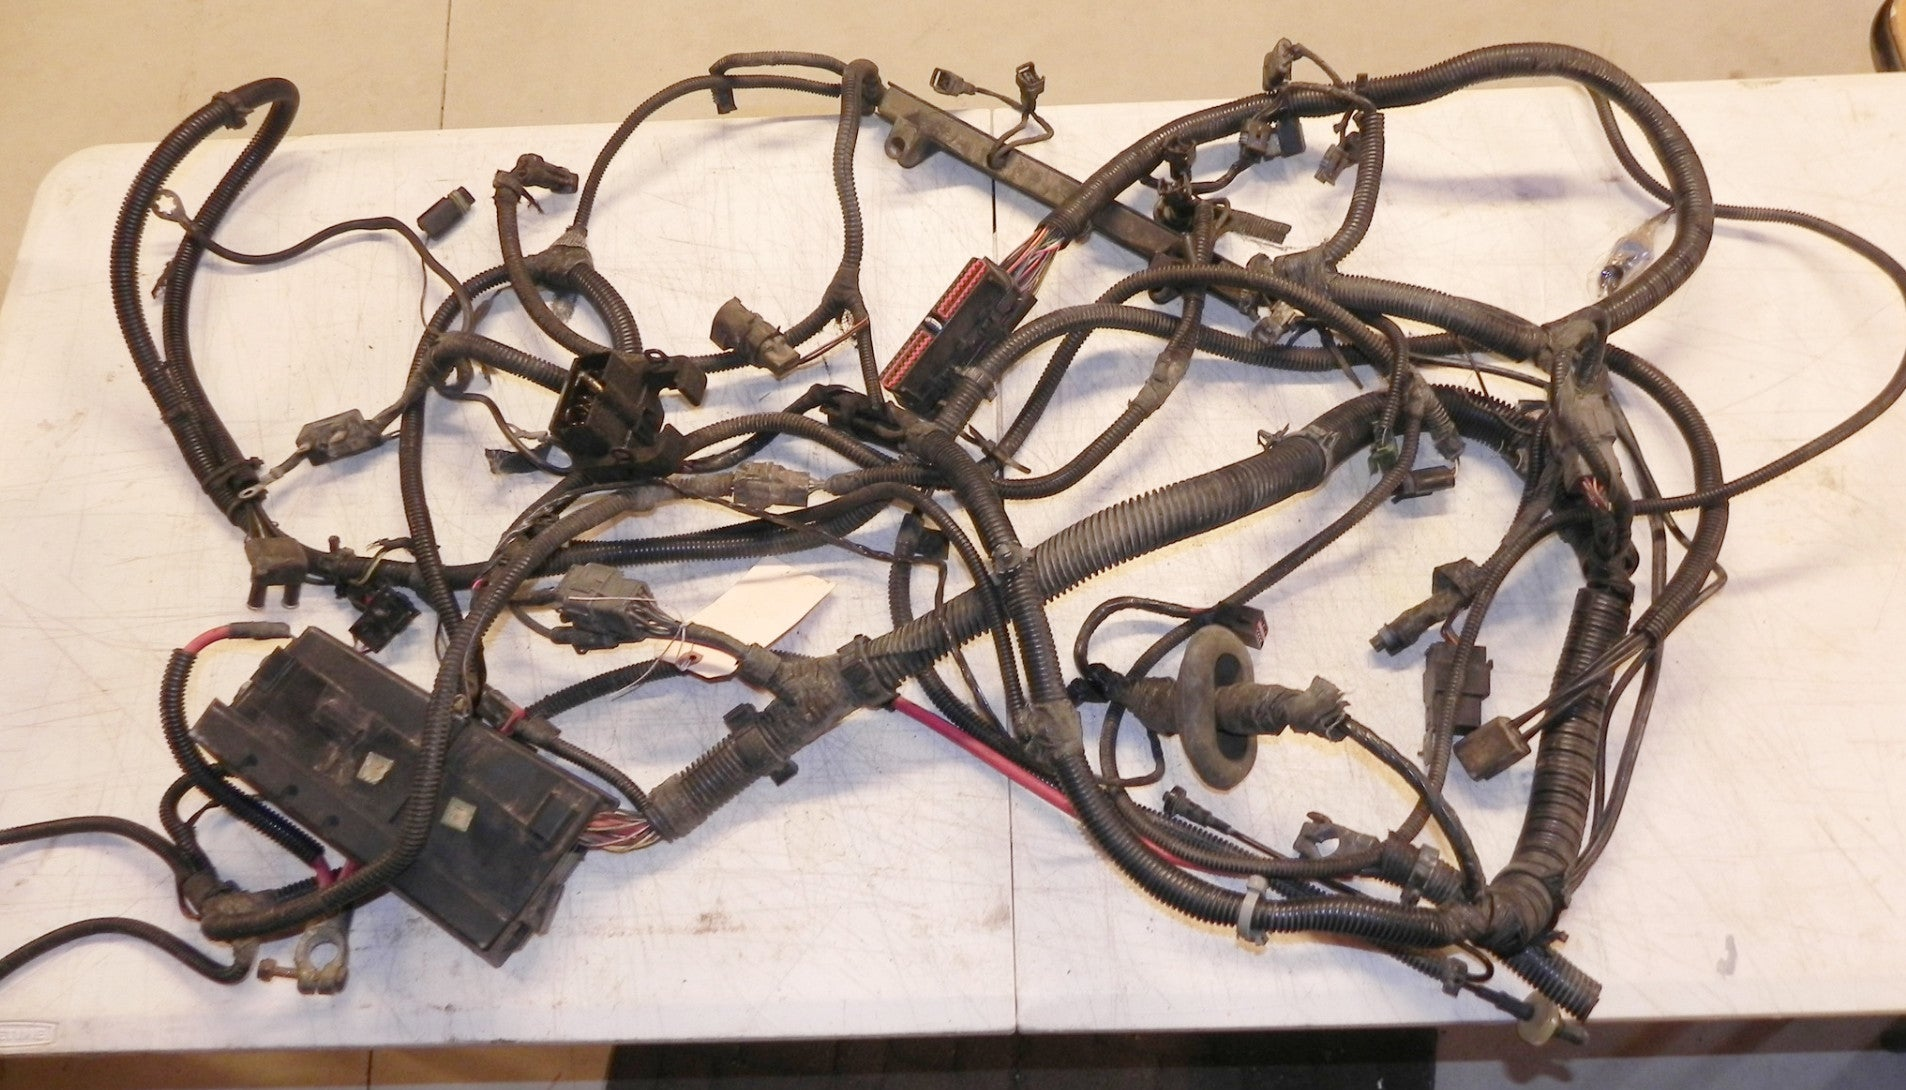 1990 jeep wrangler engine wiring harness 1990 jeep wrangler yj engine wiring harness 2 5 4 cyl automatic 94 95 on 1990 jeep